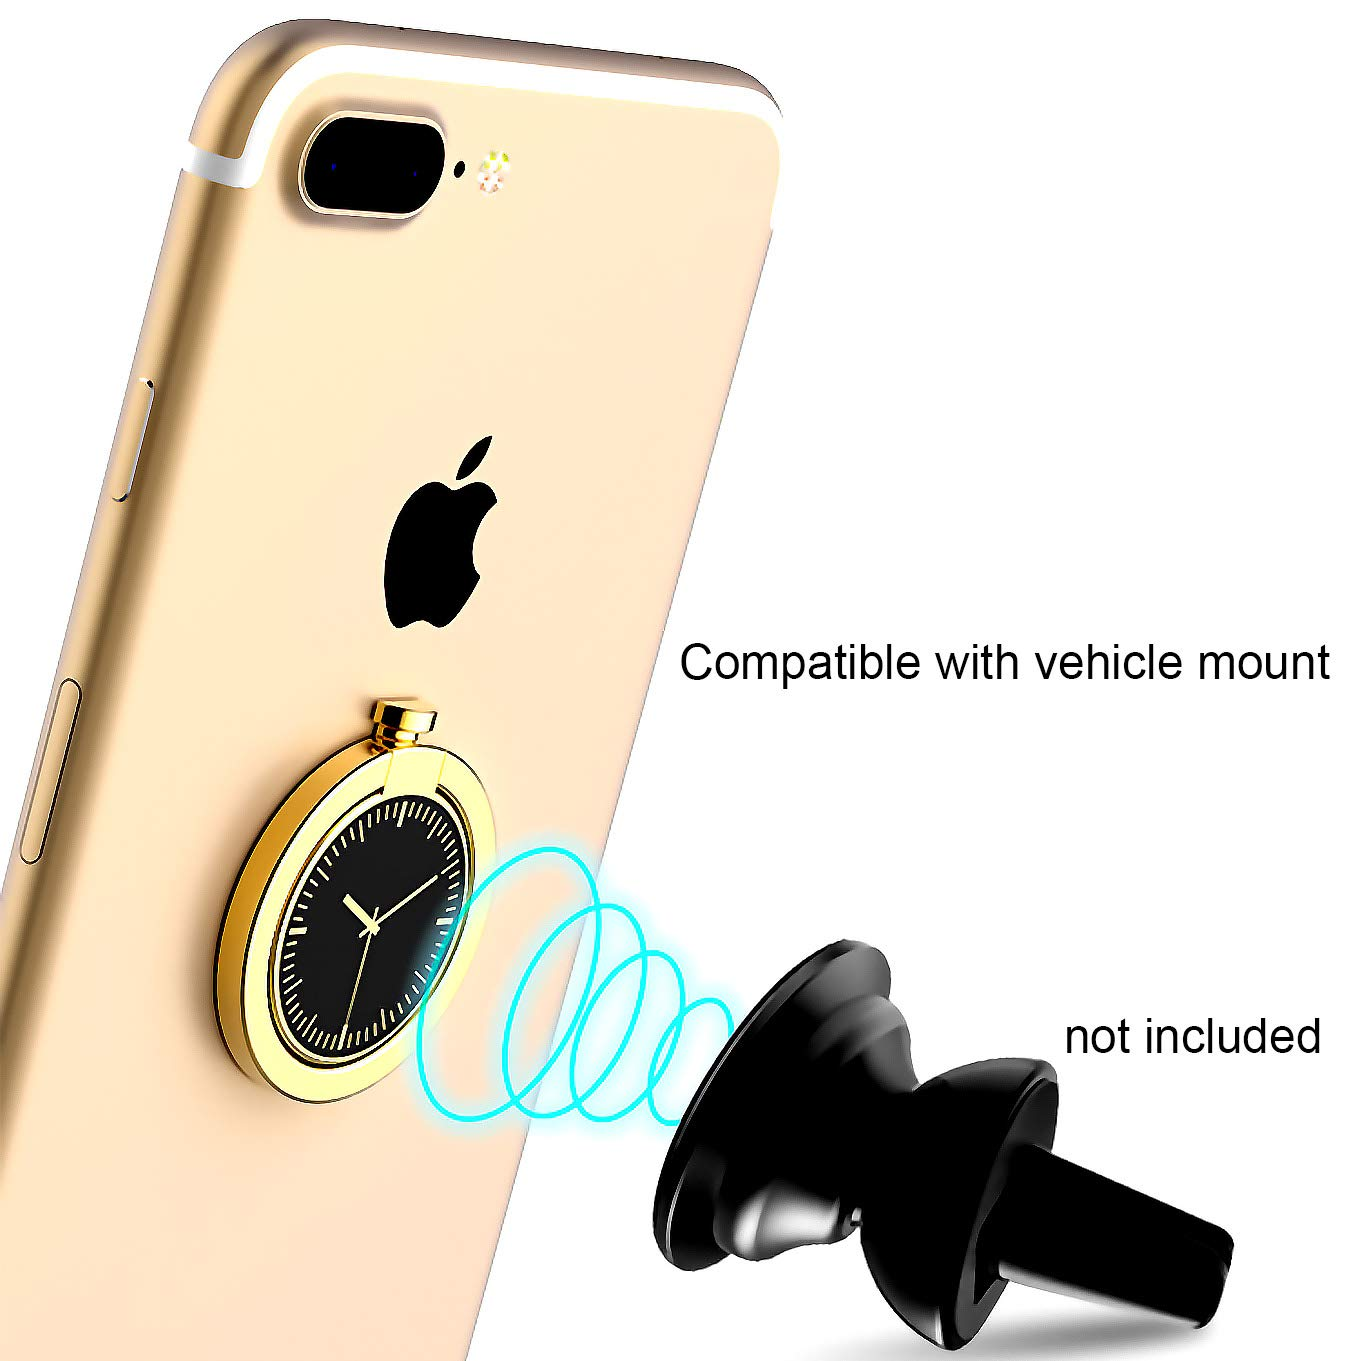 Finger Grip Stand Holder Car Mount for iPhone X,iPhone 8//8 Plus 7//7plus ipad Tablet Samsung Galaxy s9 S9plus S8//S8 Plus Edge Ring Holder 4351526171 CaseHQ Rosegold Cell Phone Ring Holder 360 Degree Rotation